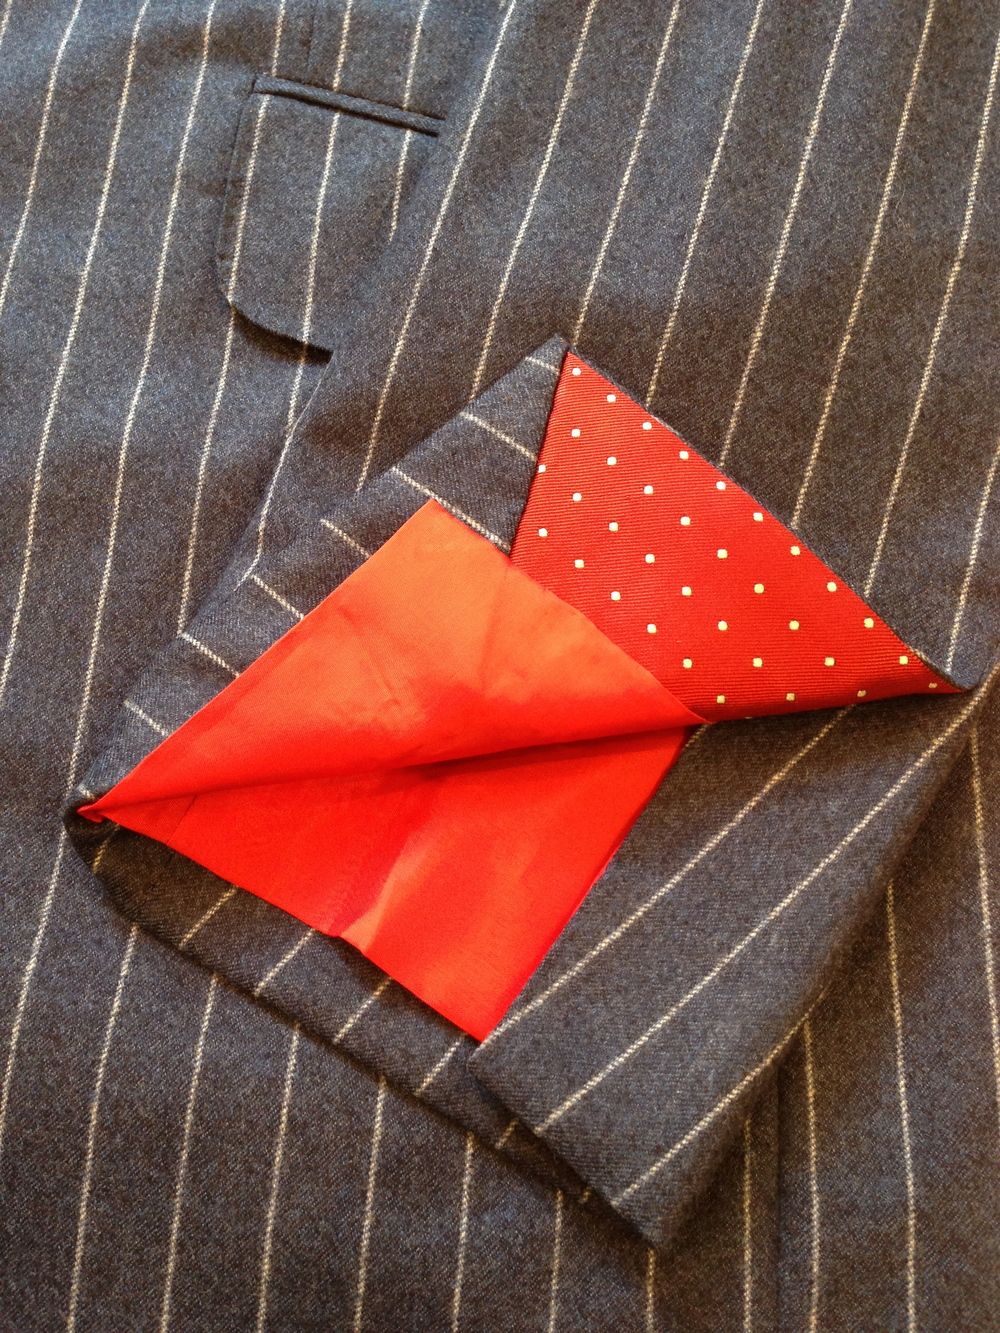 Blue striped Cacioppoli spring weight flannel with red and white silk polkadot cuff inserts.